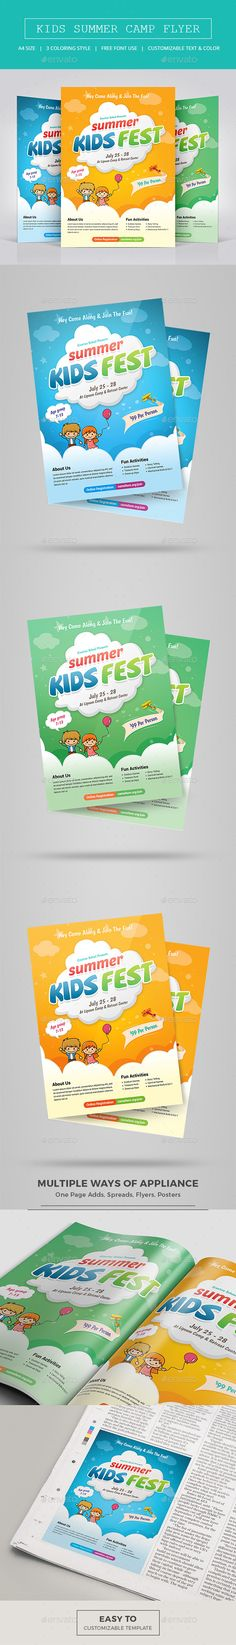 Kids Summer Camp Flyer Template PSD. Download here: https://graphicriver.net/item/kids-summer-camp-flyer/17172850?ref=ksioks